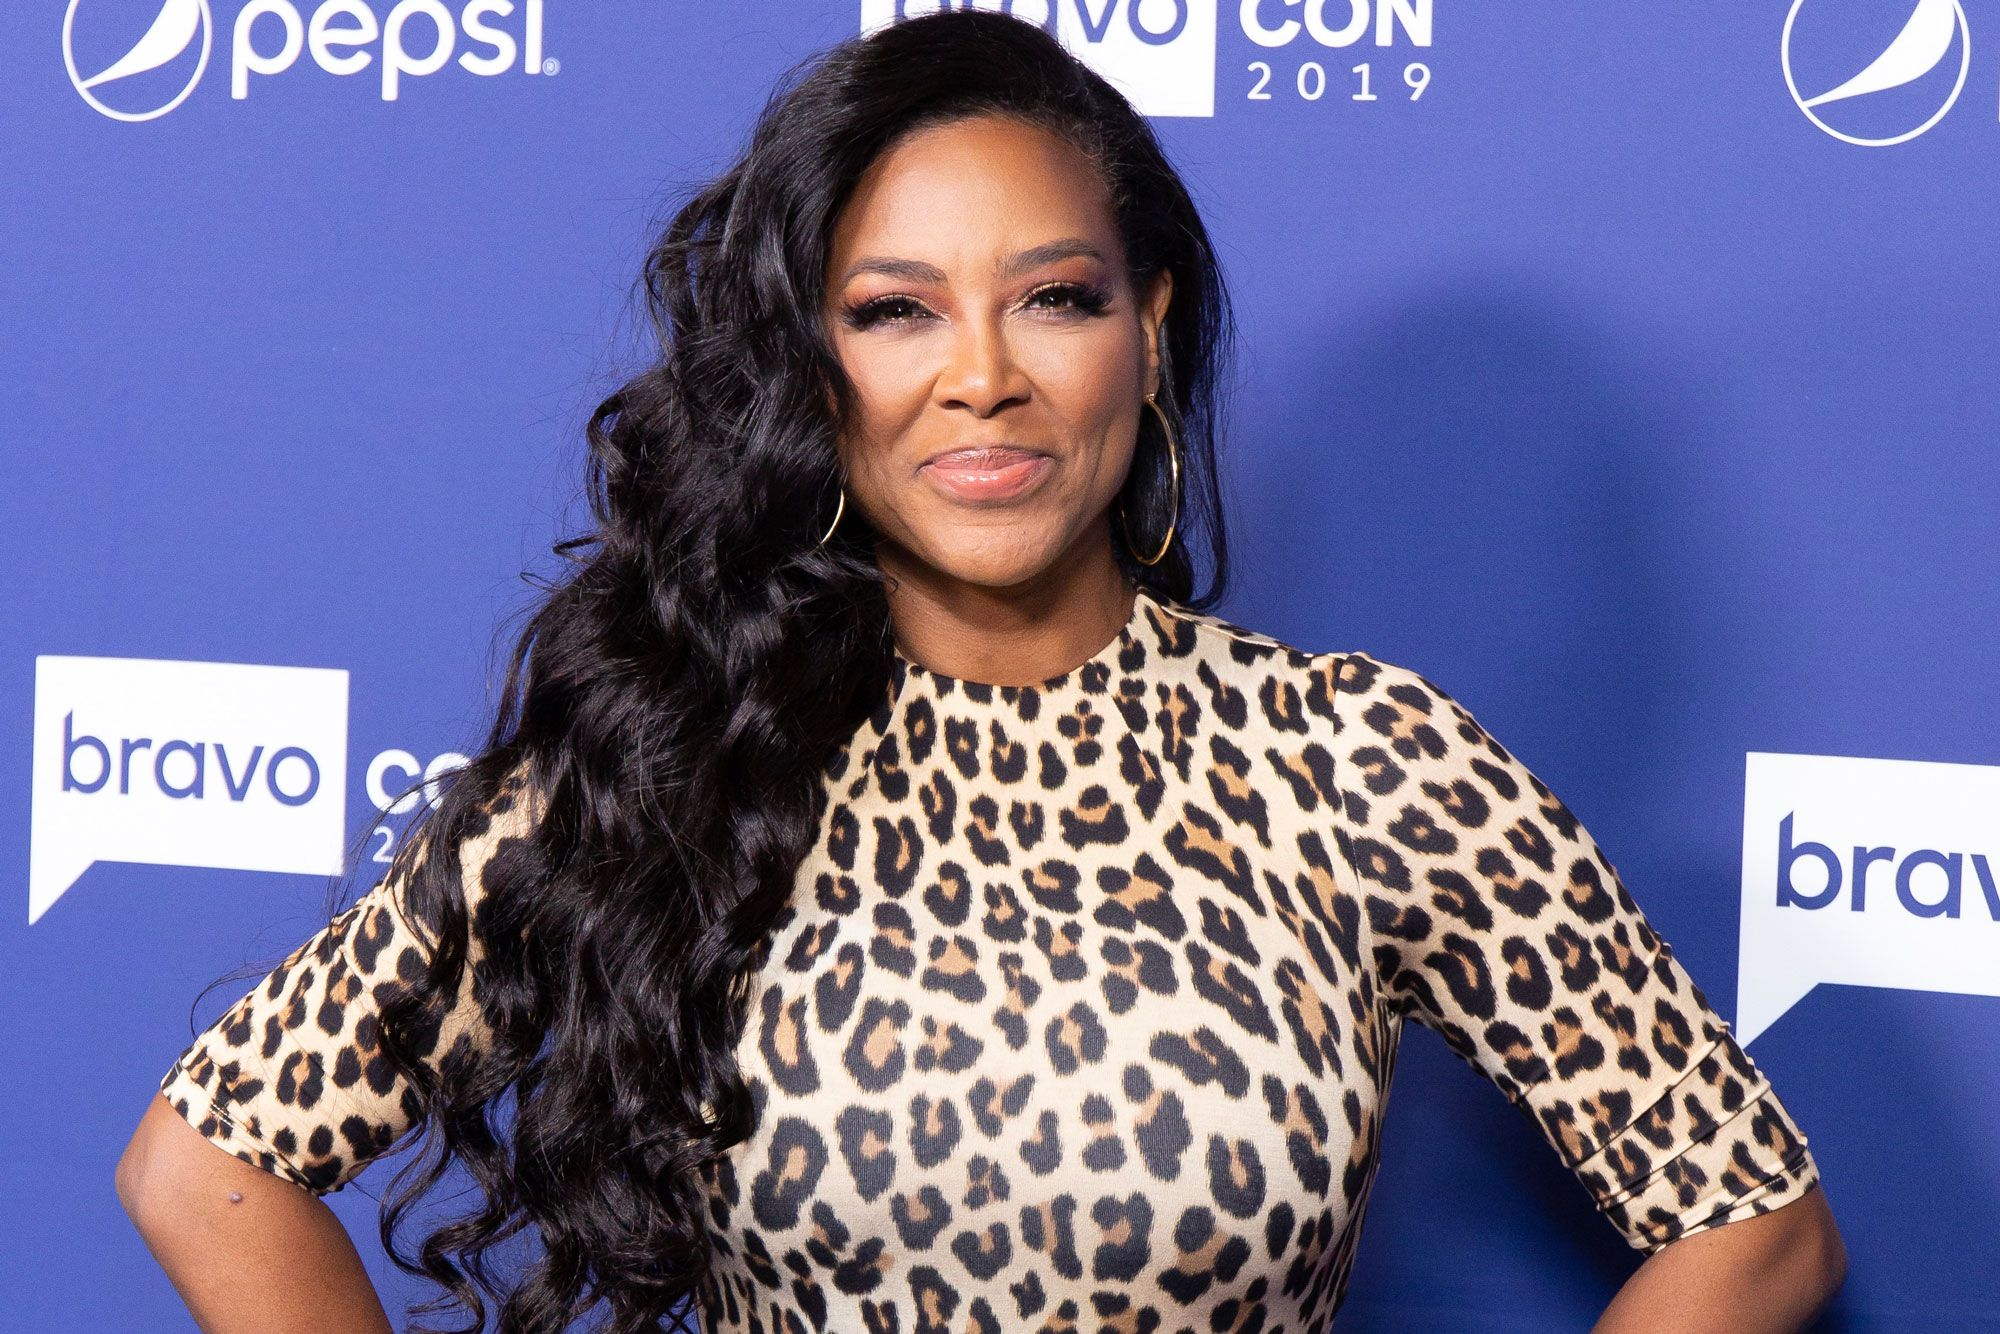 Kenya Moore Shares A Throwback Photo Featuring Eva Marcille, Taking Fans Down The Memory Lane